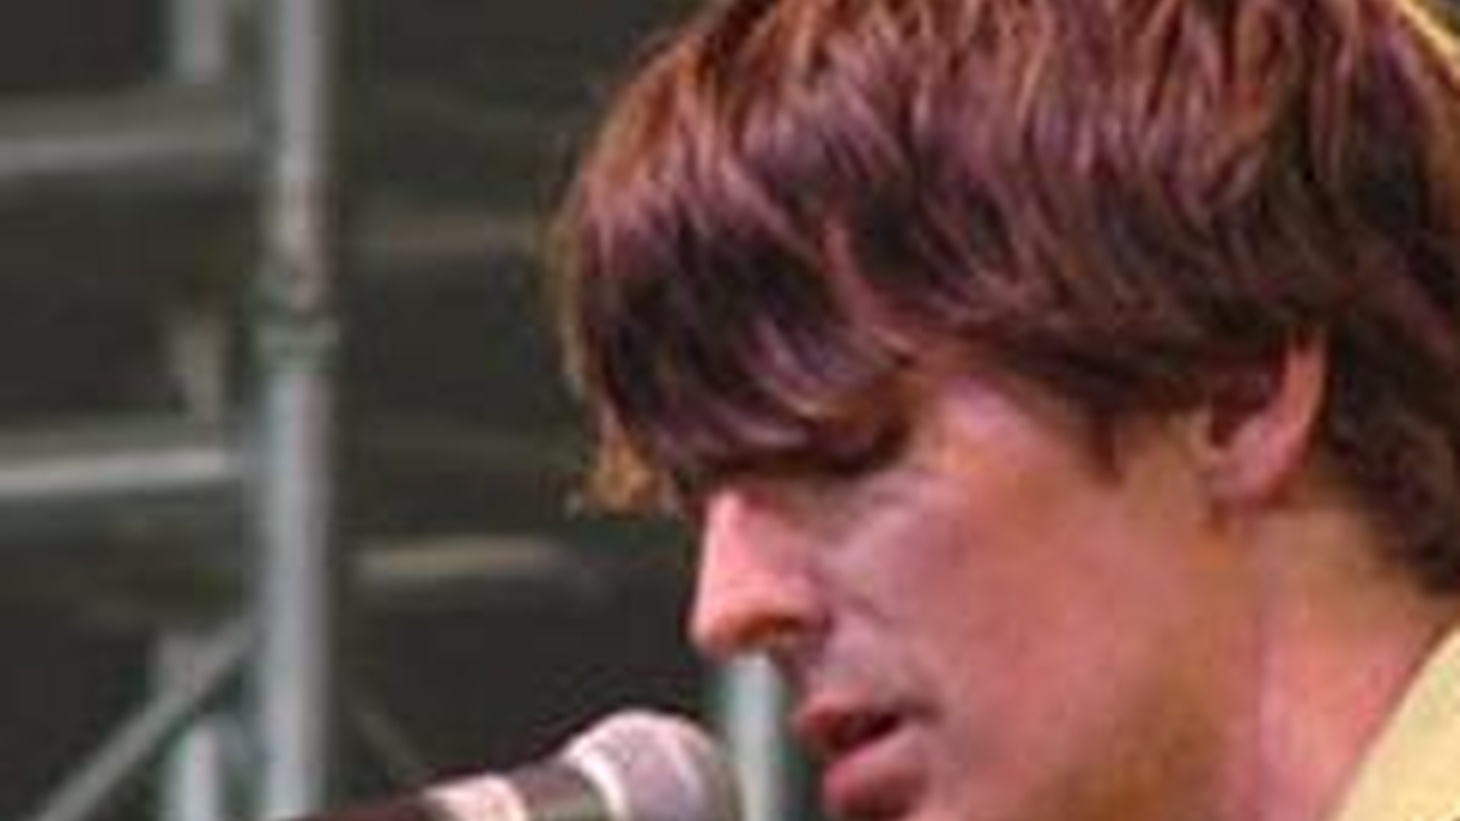 Pavement founder, Stephen Malkmus, performs solo and acoustic on Morning Becomes Eclectic at 11:15am. Click Here to Watch!